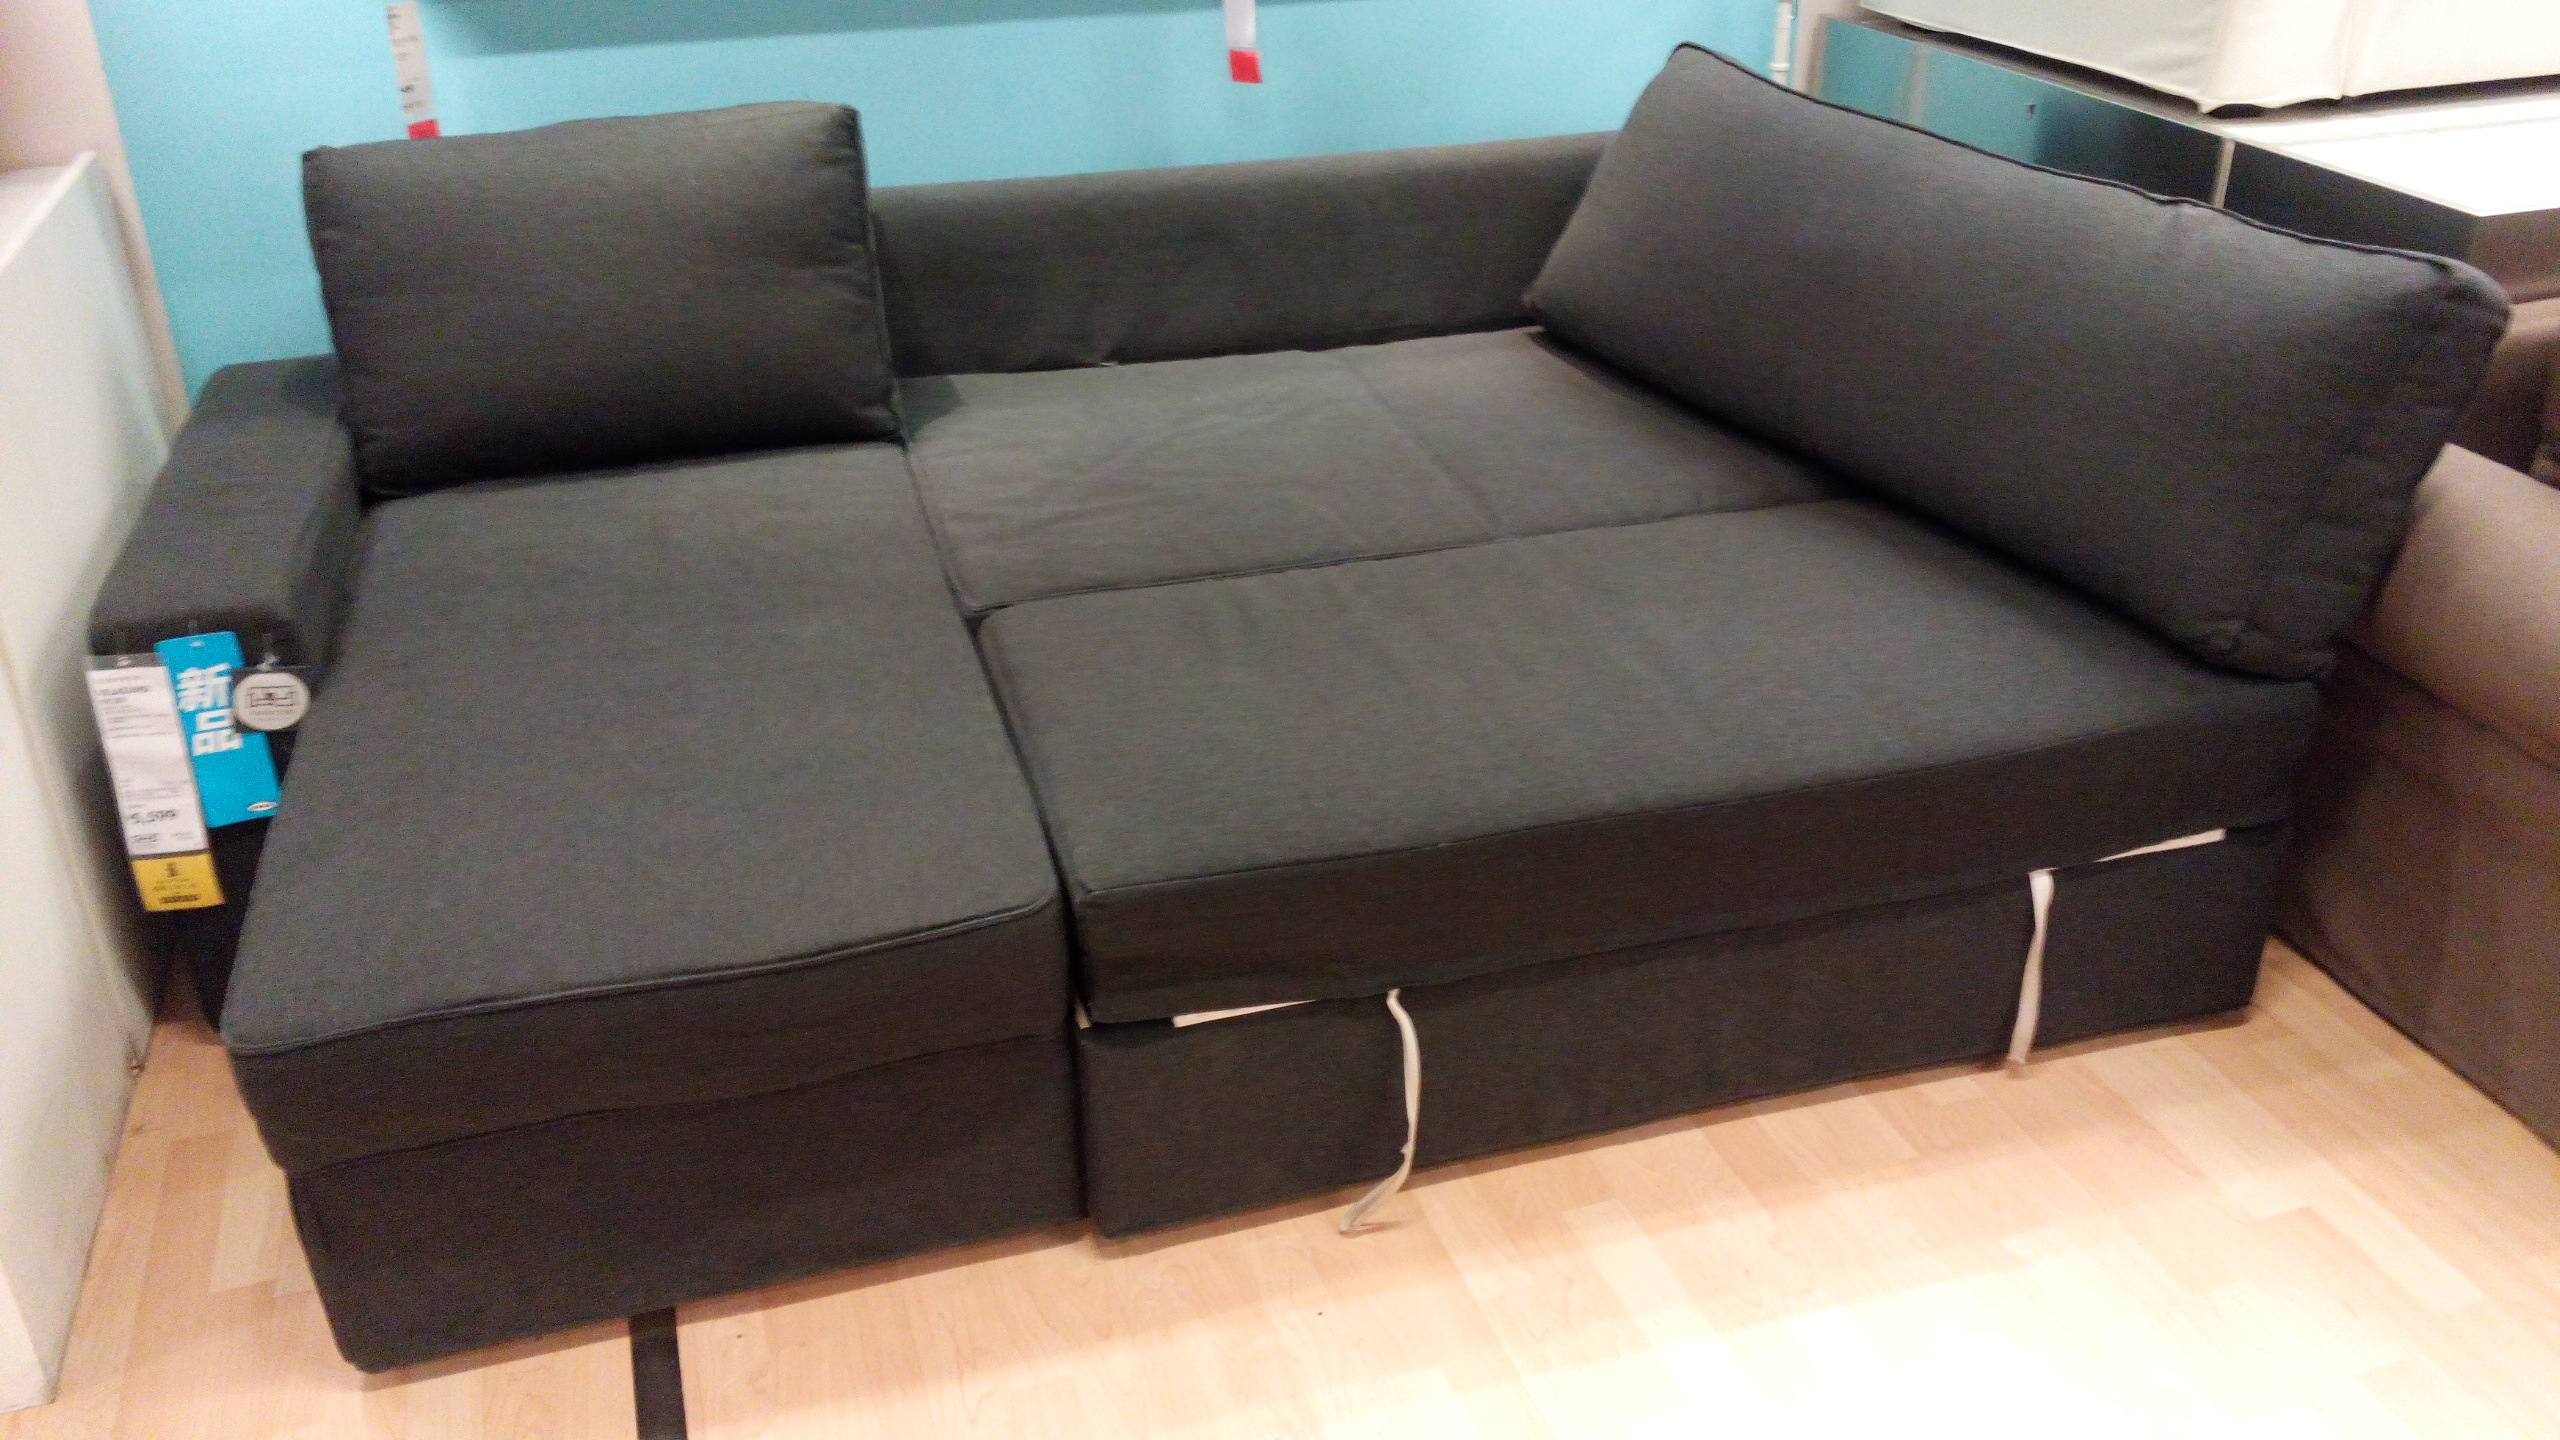 Bad Ikea Top 10 Ikea Sofa Beds Reviewed Jan 2019 Sleep Good Tonight